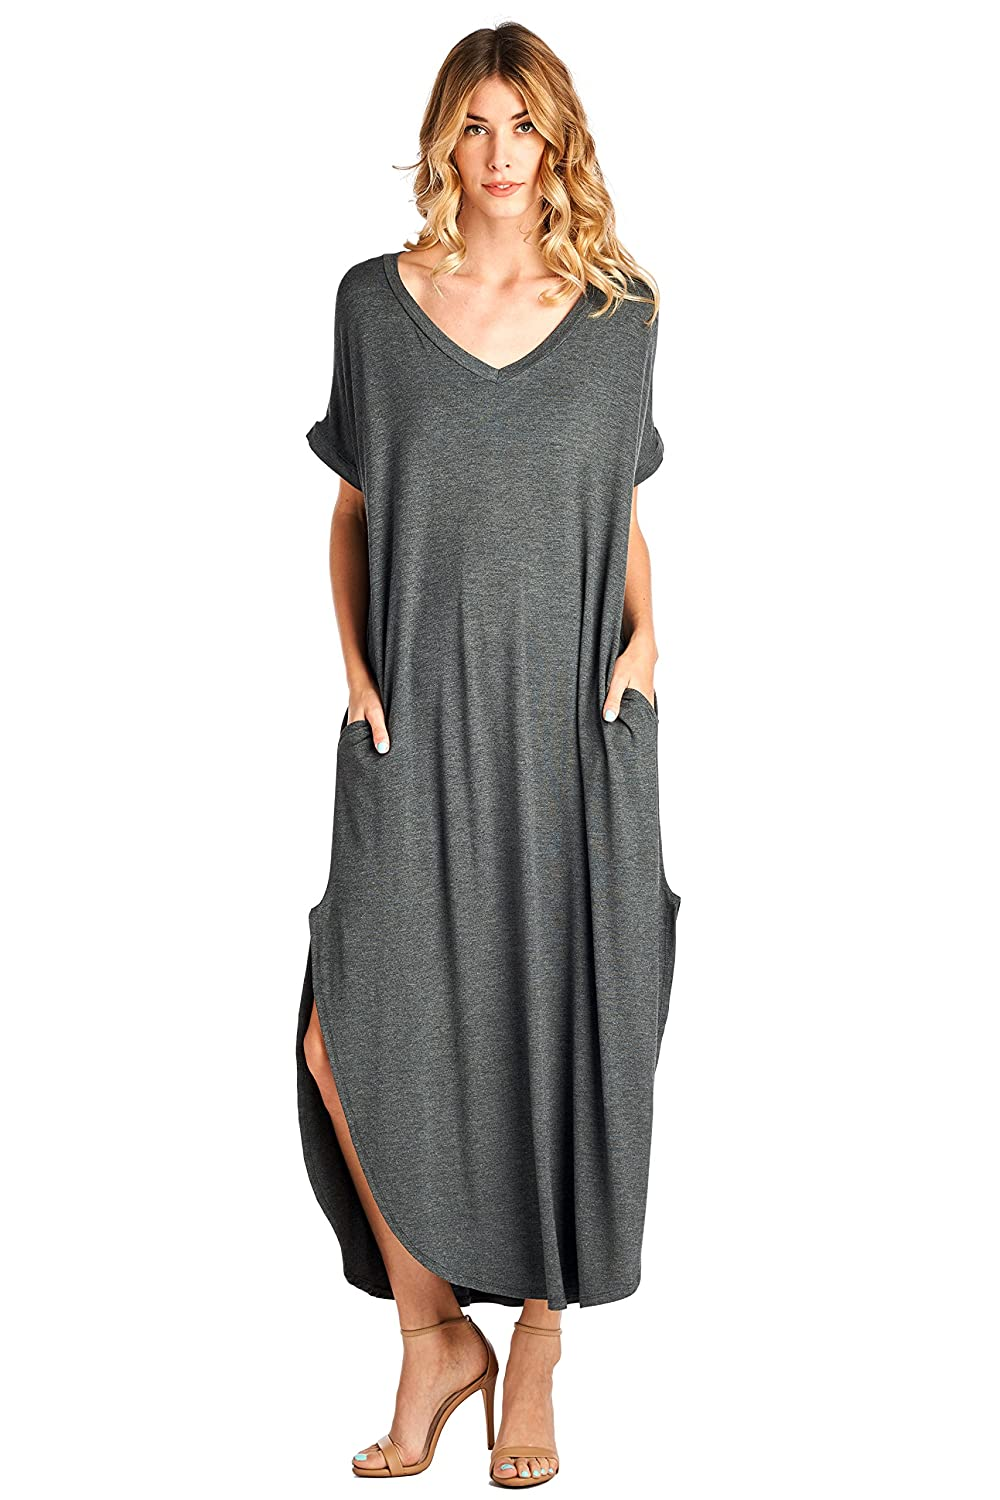 12 Ami Solid V-Neck Pocket Loose Maxi Dress (S-3X) - Made in USA